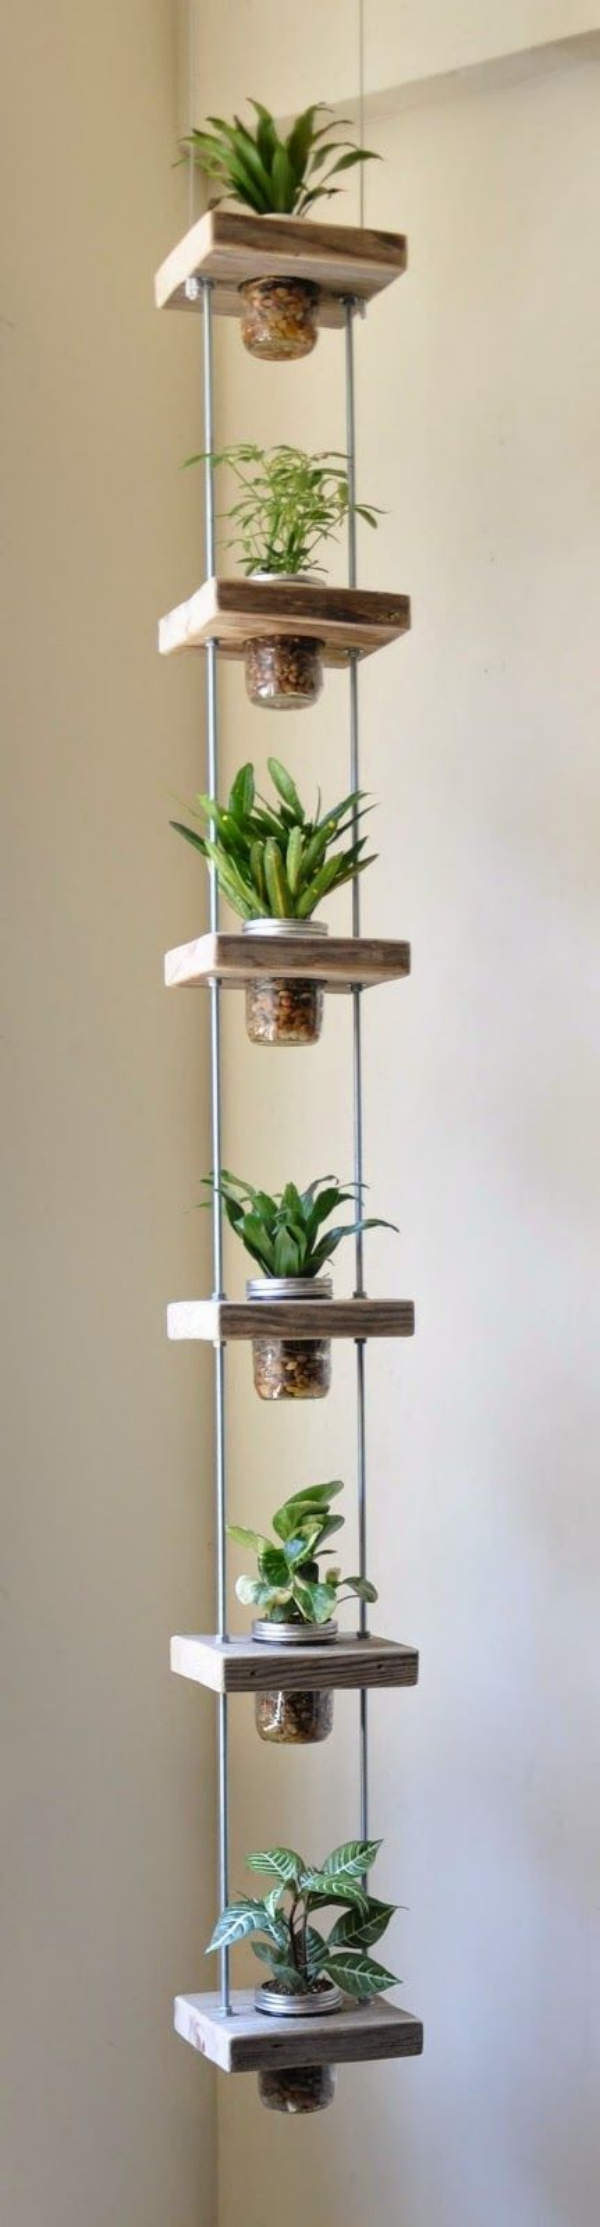 Super-Creative-Vertical-Garden-Ideas-2